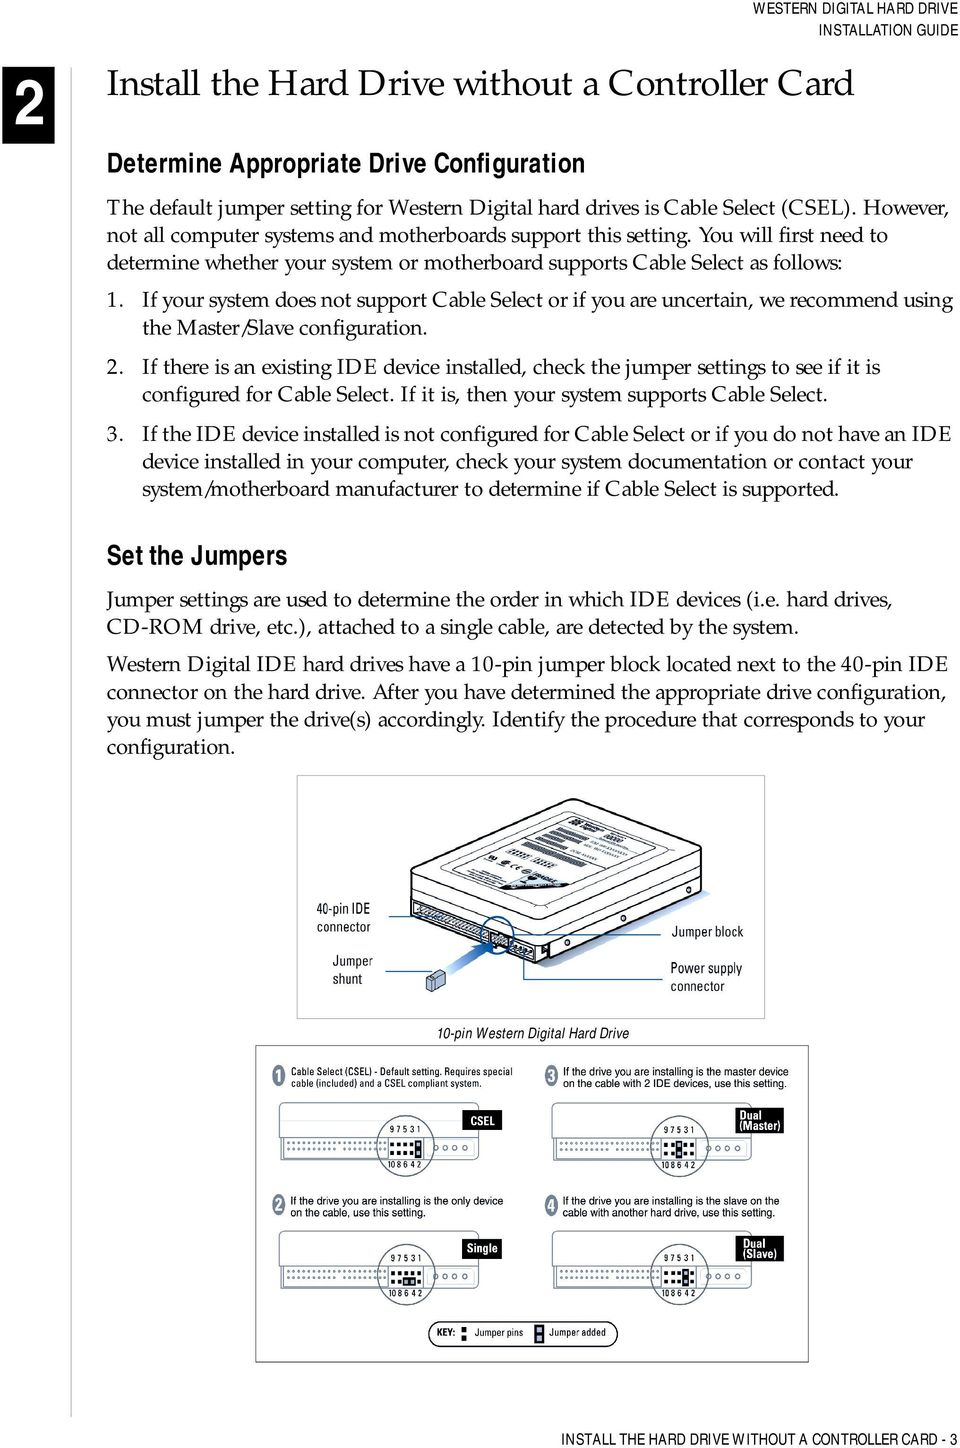 Western Digital Hard Drive Installation Guide - PDF